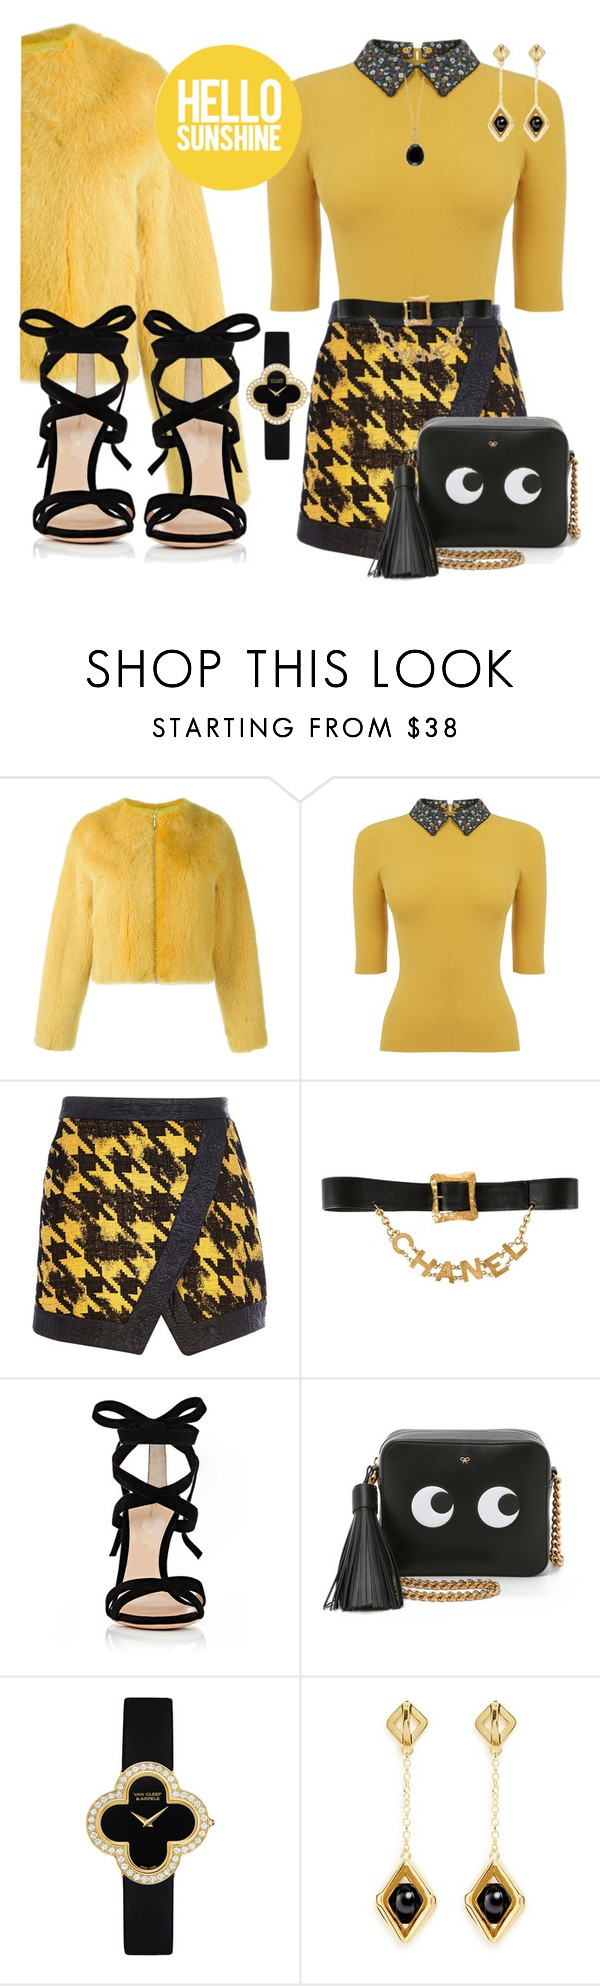 """🌞SUNSHINE🌞"" by ellenfischerbeauty ❤ liked on Polyvore featuring Liska, Oasis, River Island, Chanel, Gianvito Rossi, Anya Hindmarch, Van Cleef & Arpels, W. Britt and Effy Jewelry"